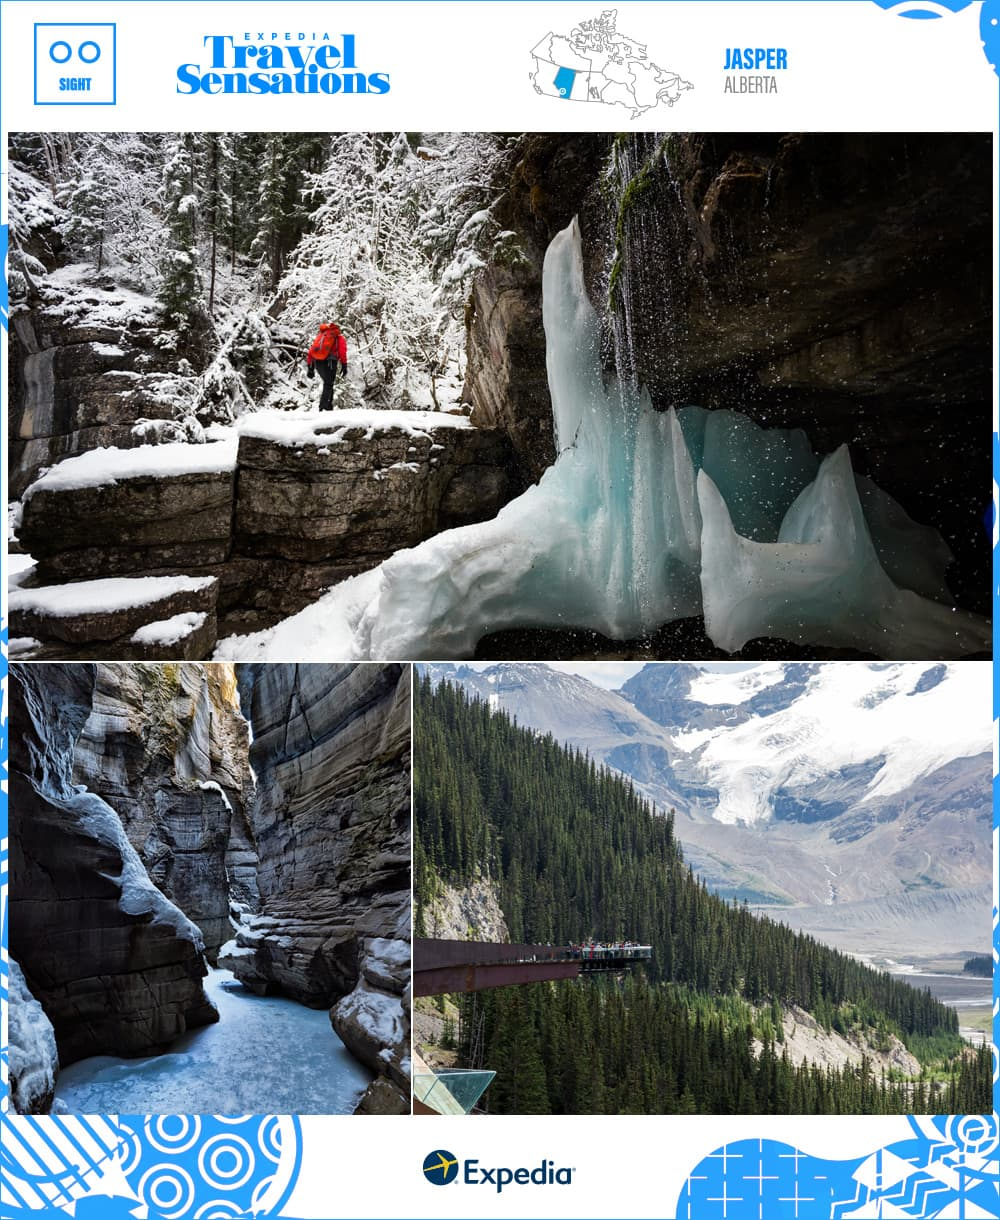 frozen falls, caves, and mountain views in jasper, alberta